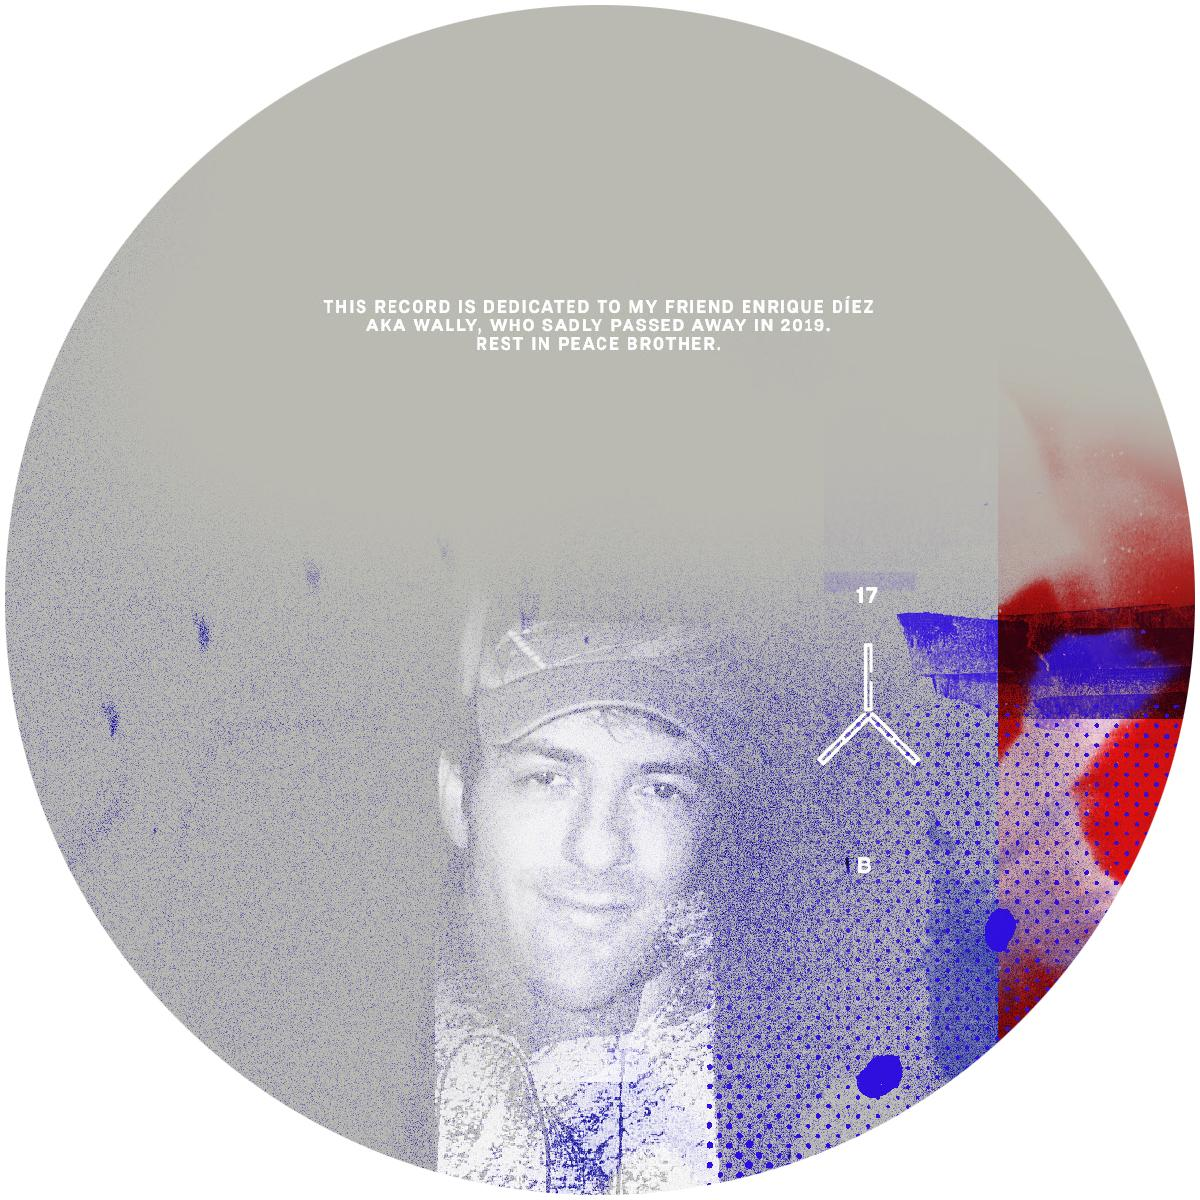 J.C. remix Héctor Oaks  'Farewell for Walls' 12""